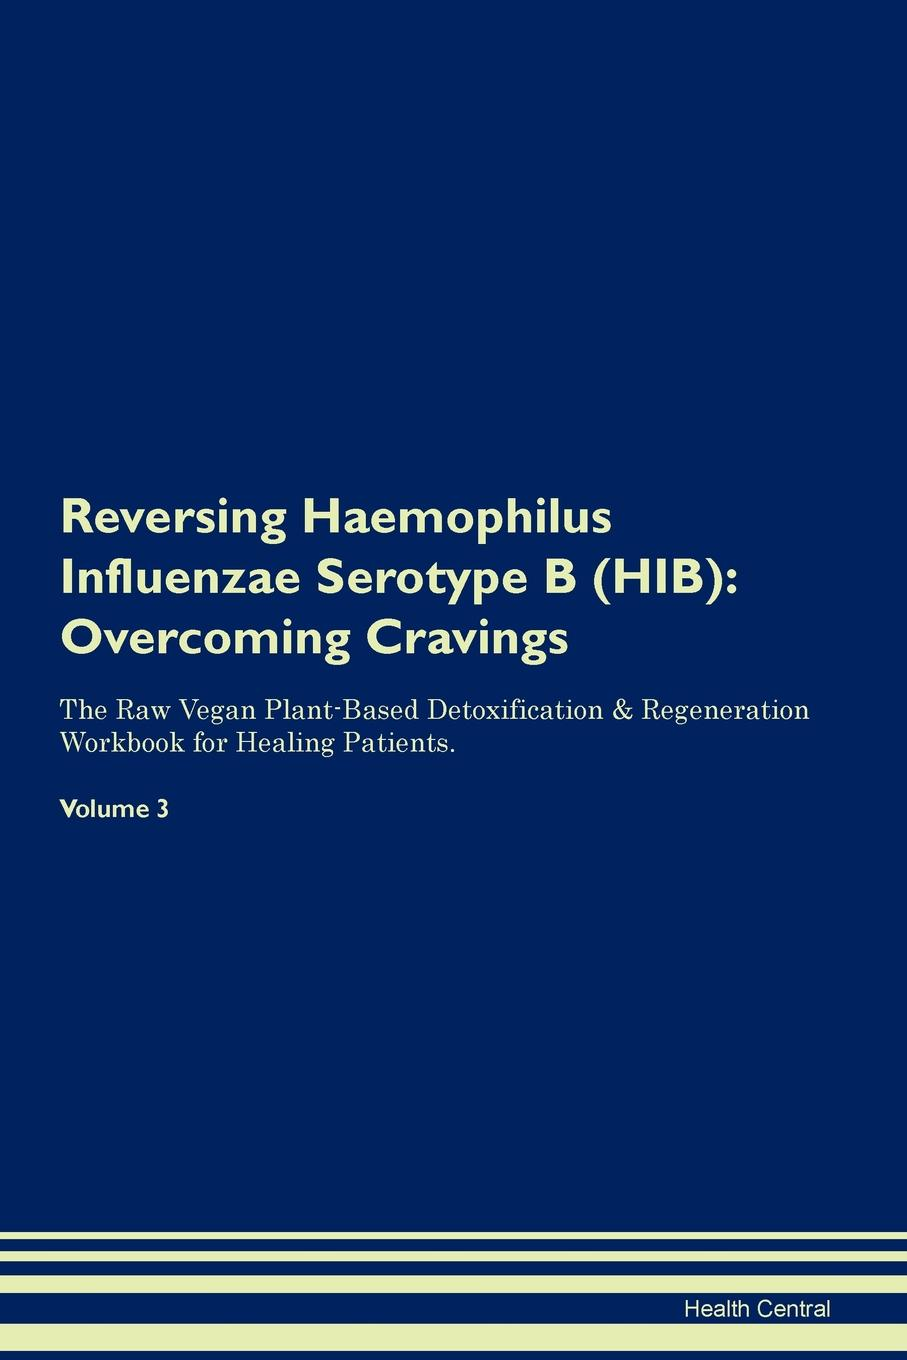 Health Central Reversing Haemophilus Influenzae Serotype B (HIB). Overcoming Cravings The Raw Vegan Plant-Based Detoxification & Regeneration Workbook for Healing Patients. Volume 3